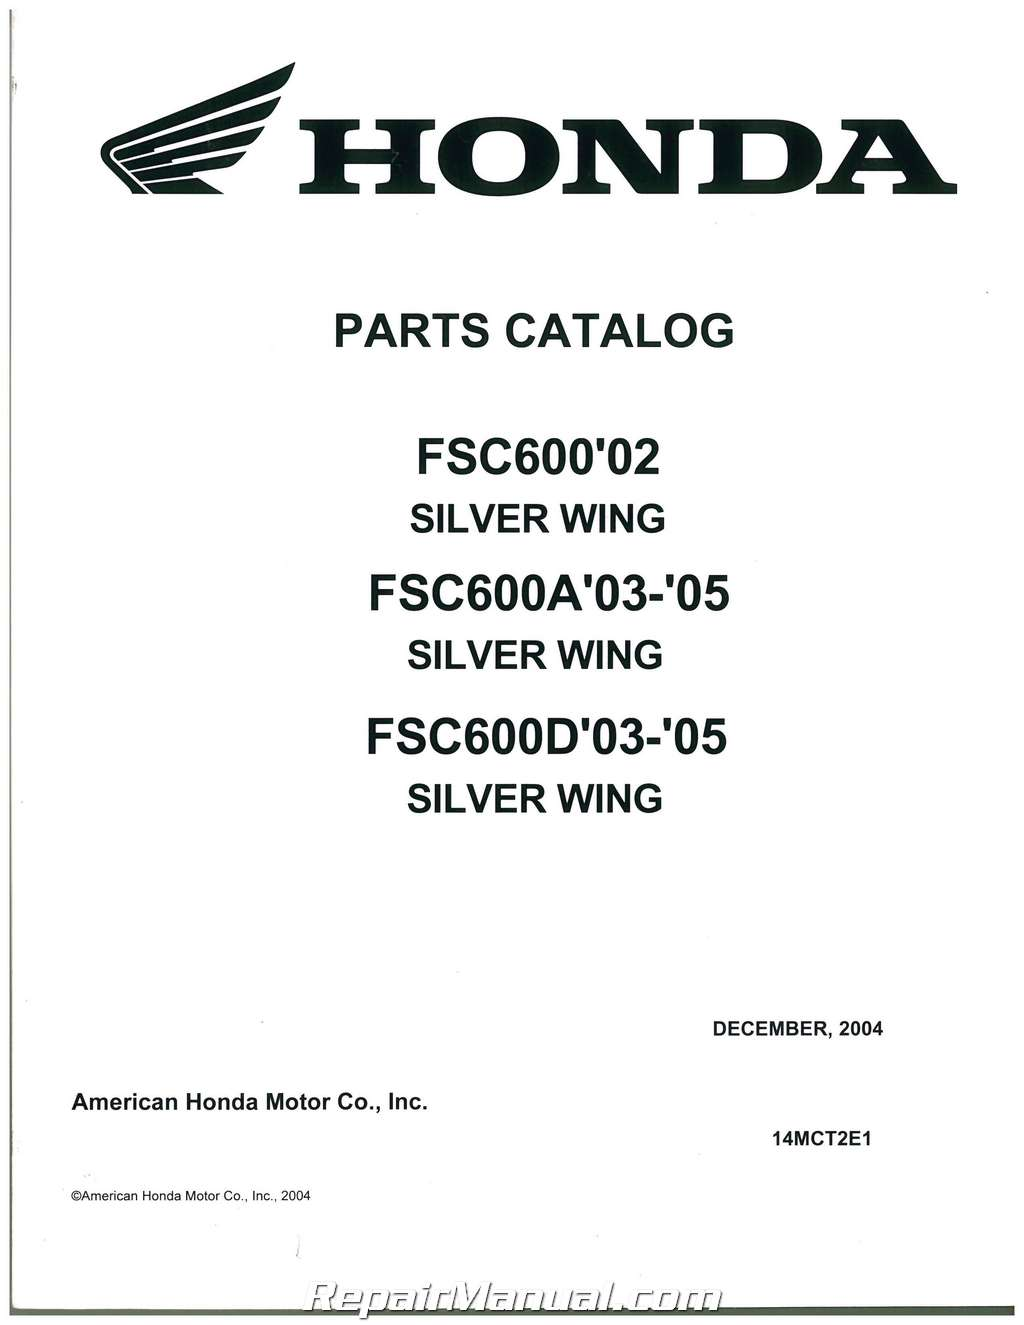 2002-2004 Honda FSC600 Silver Wing Motorcycle Parts Manual